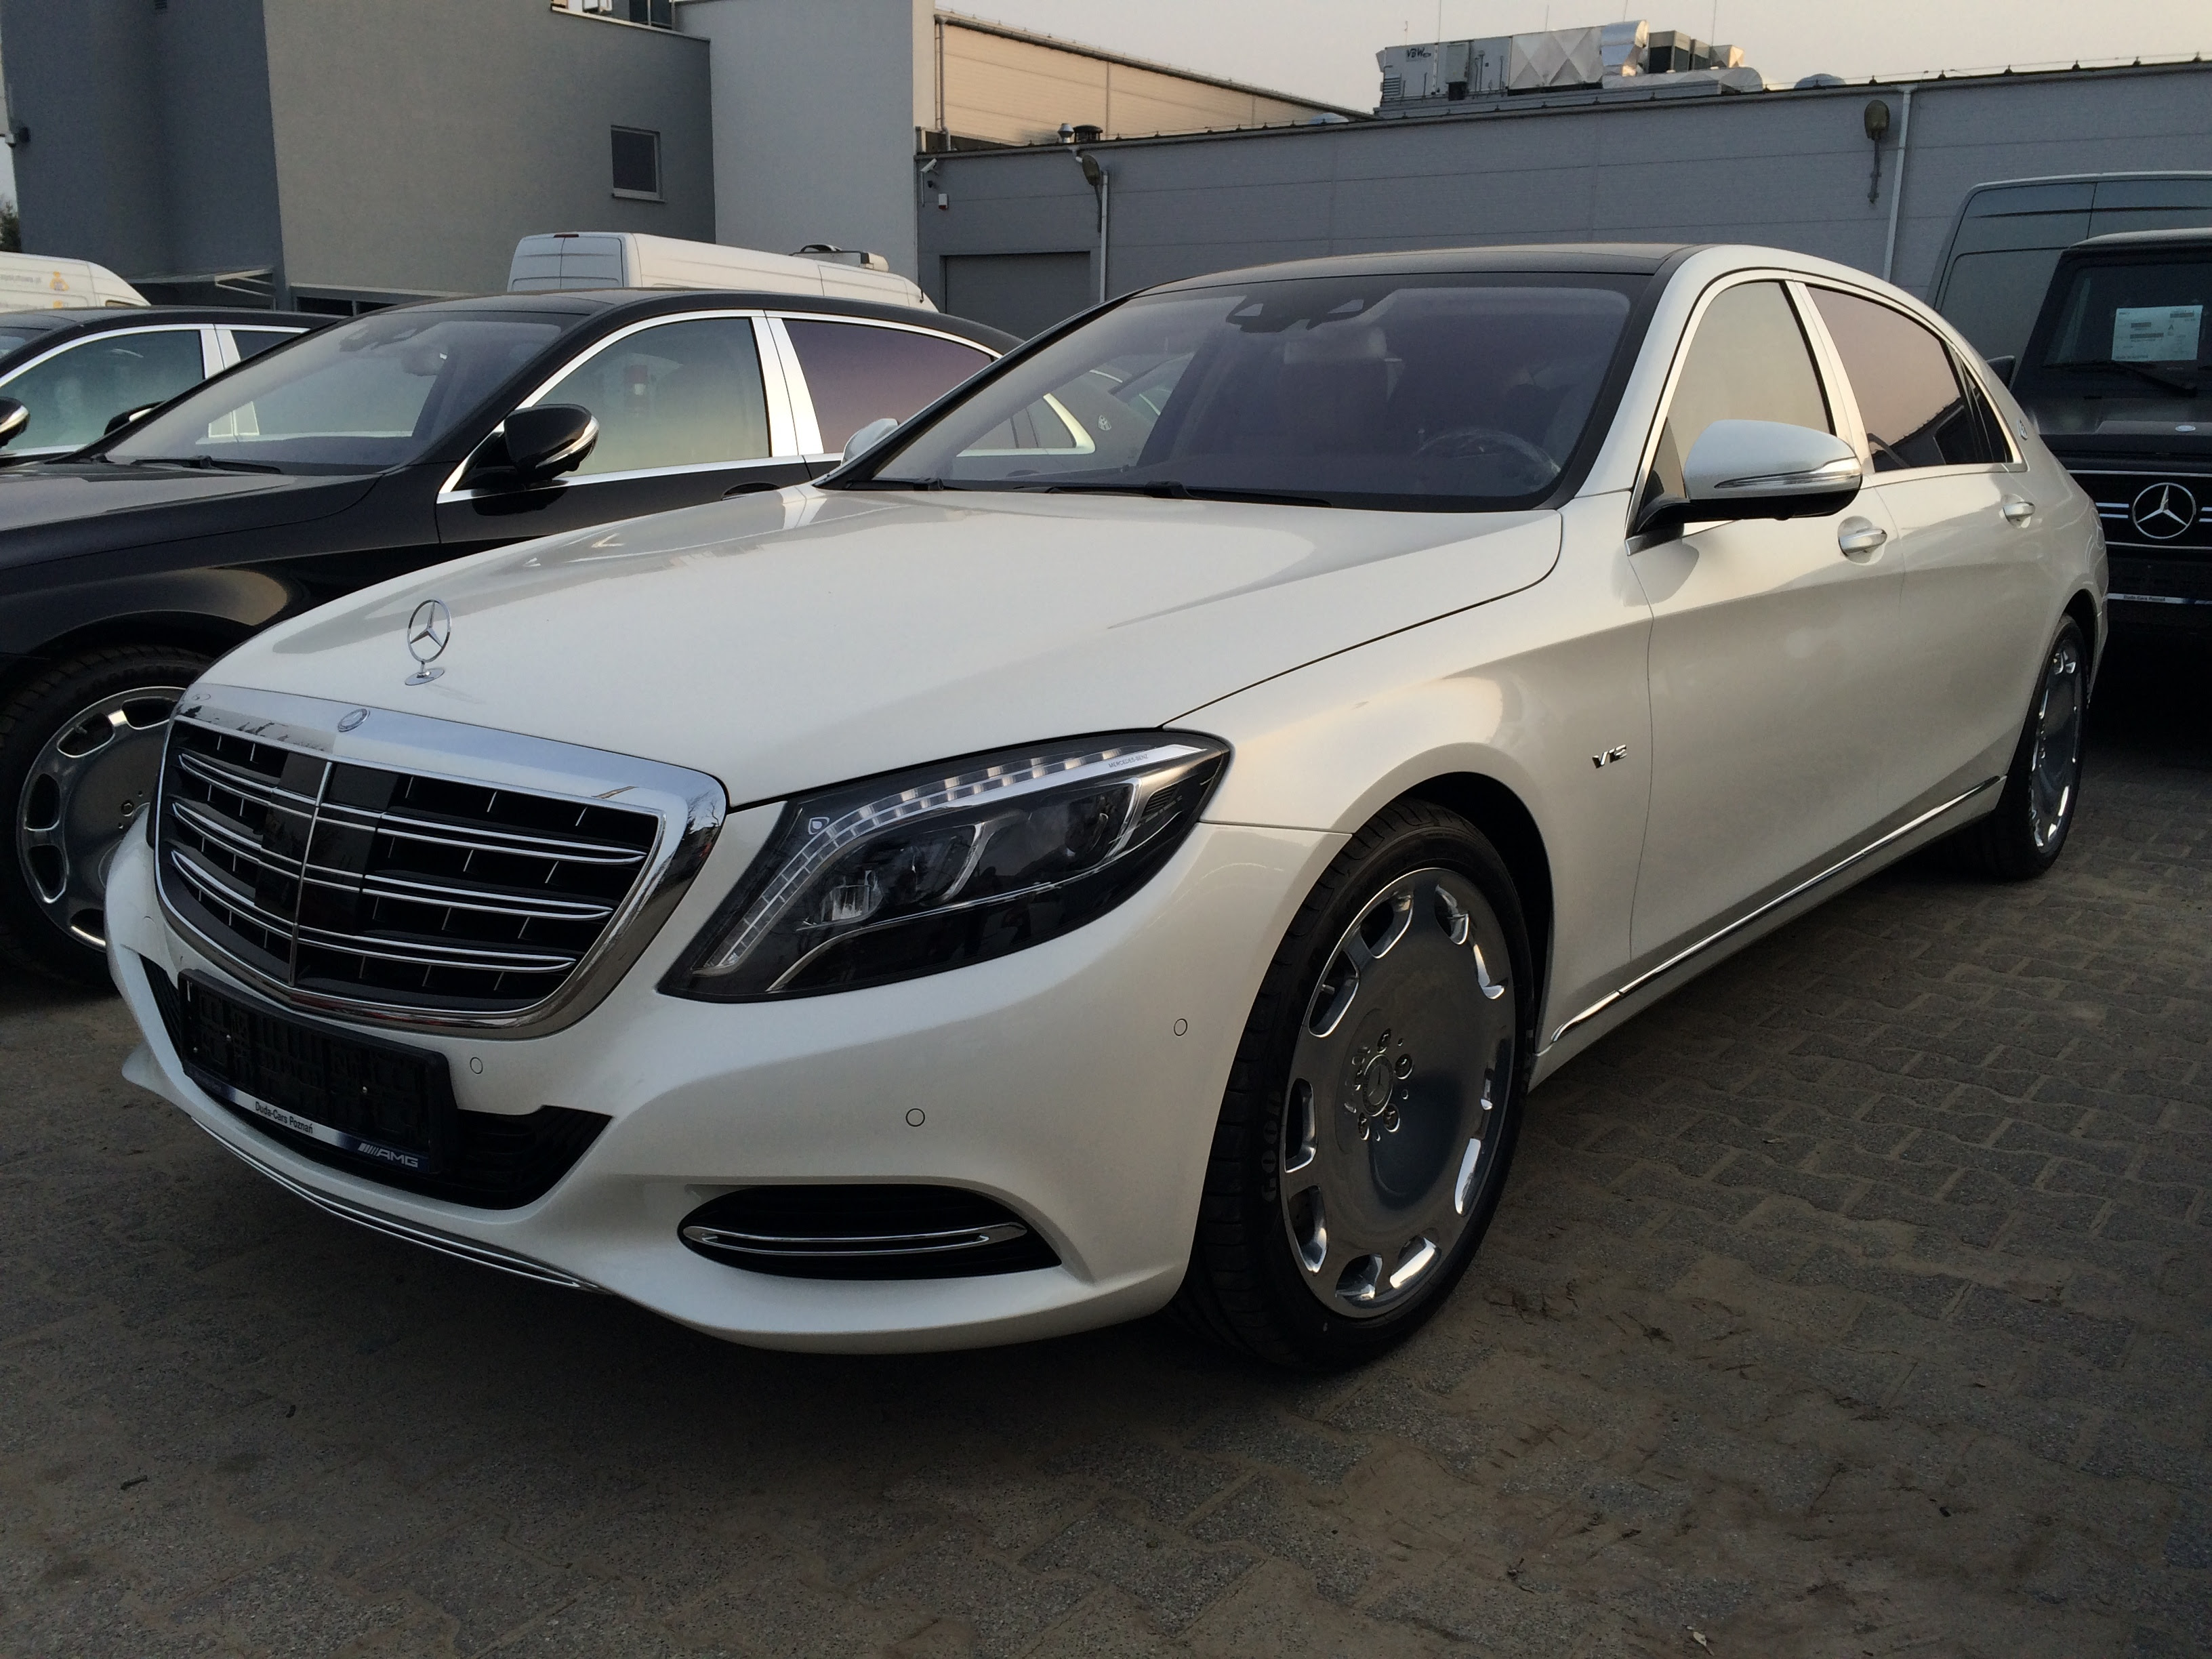 new 2015 mercedes s600 maybach product price   Buy Aircrafts